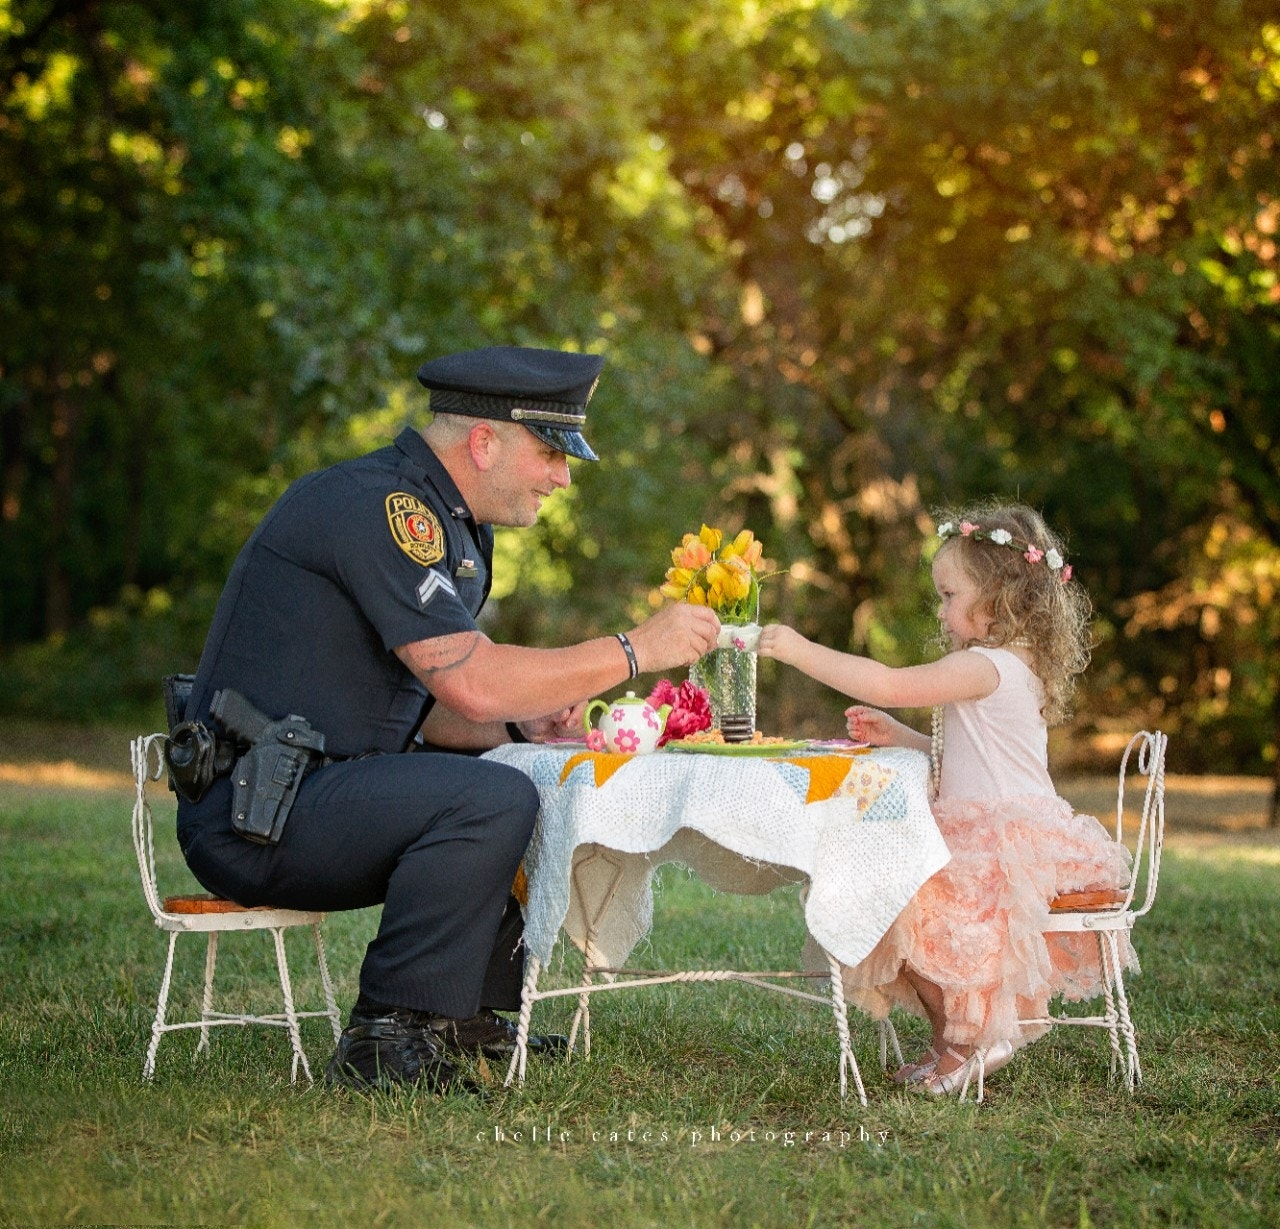 Child Saves Choking Mother By Performing Heimlich Maneuver: 1 Year After Saving Her Life, Texas Police Officer Has Tea